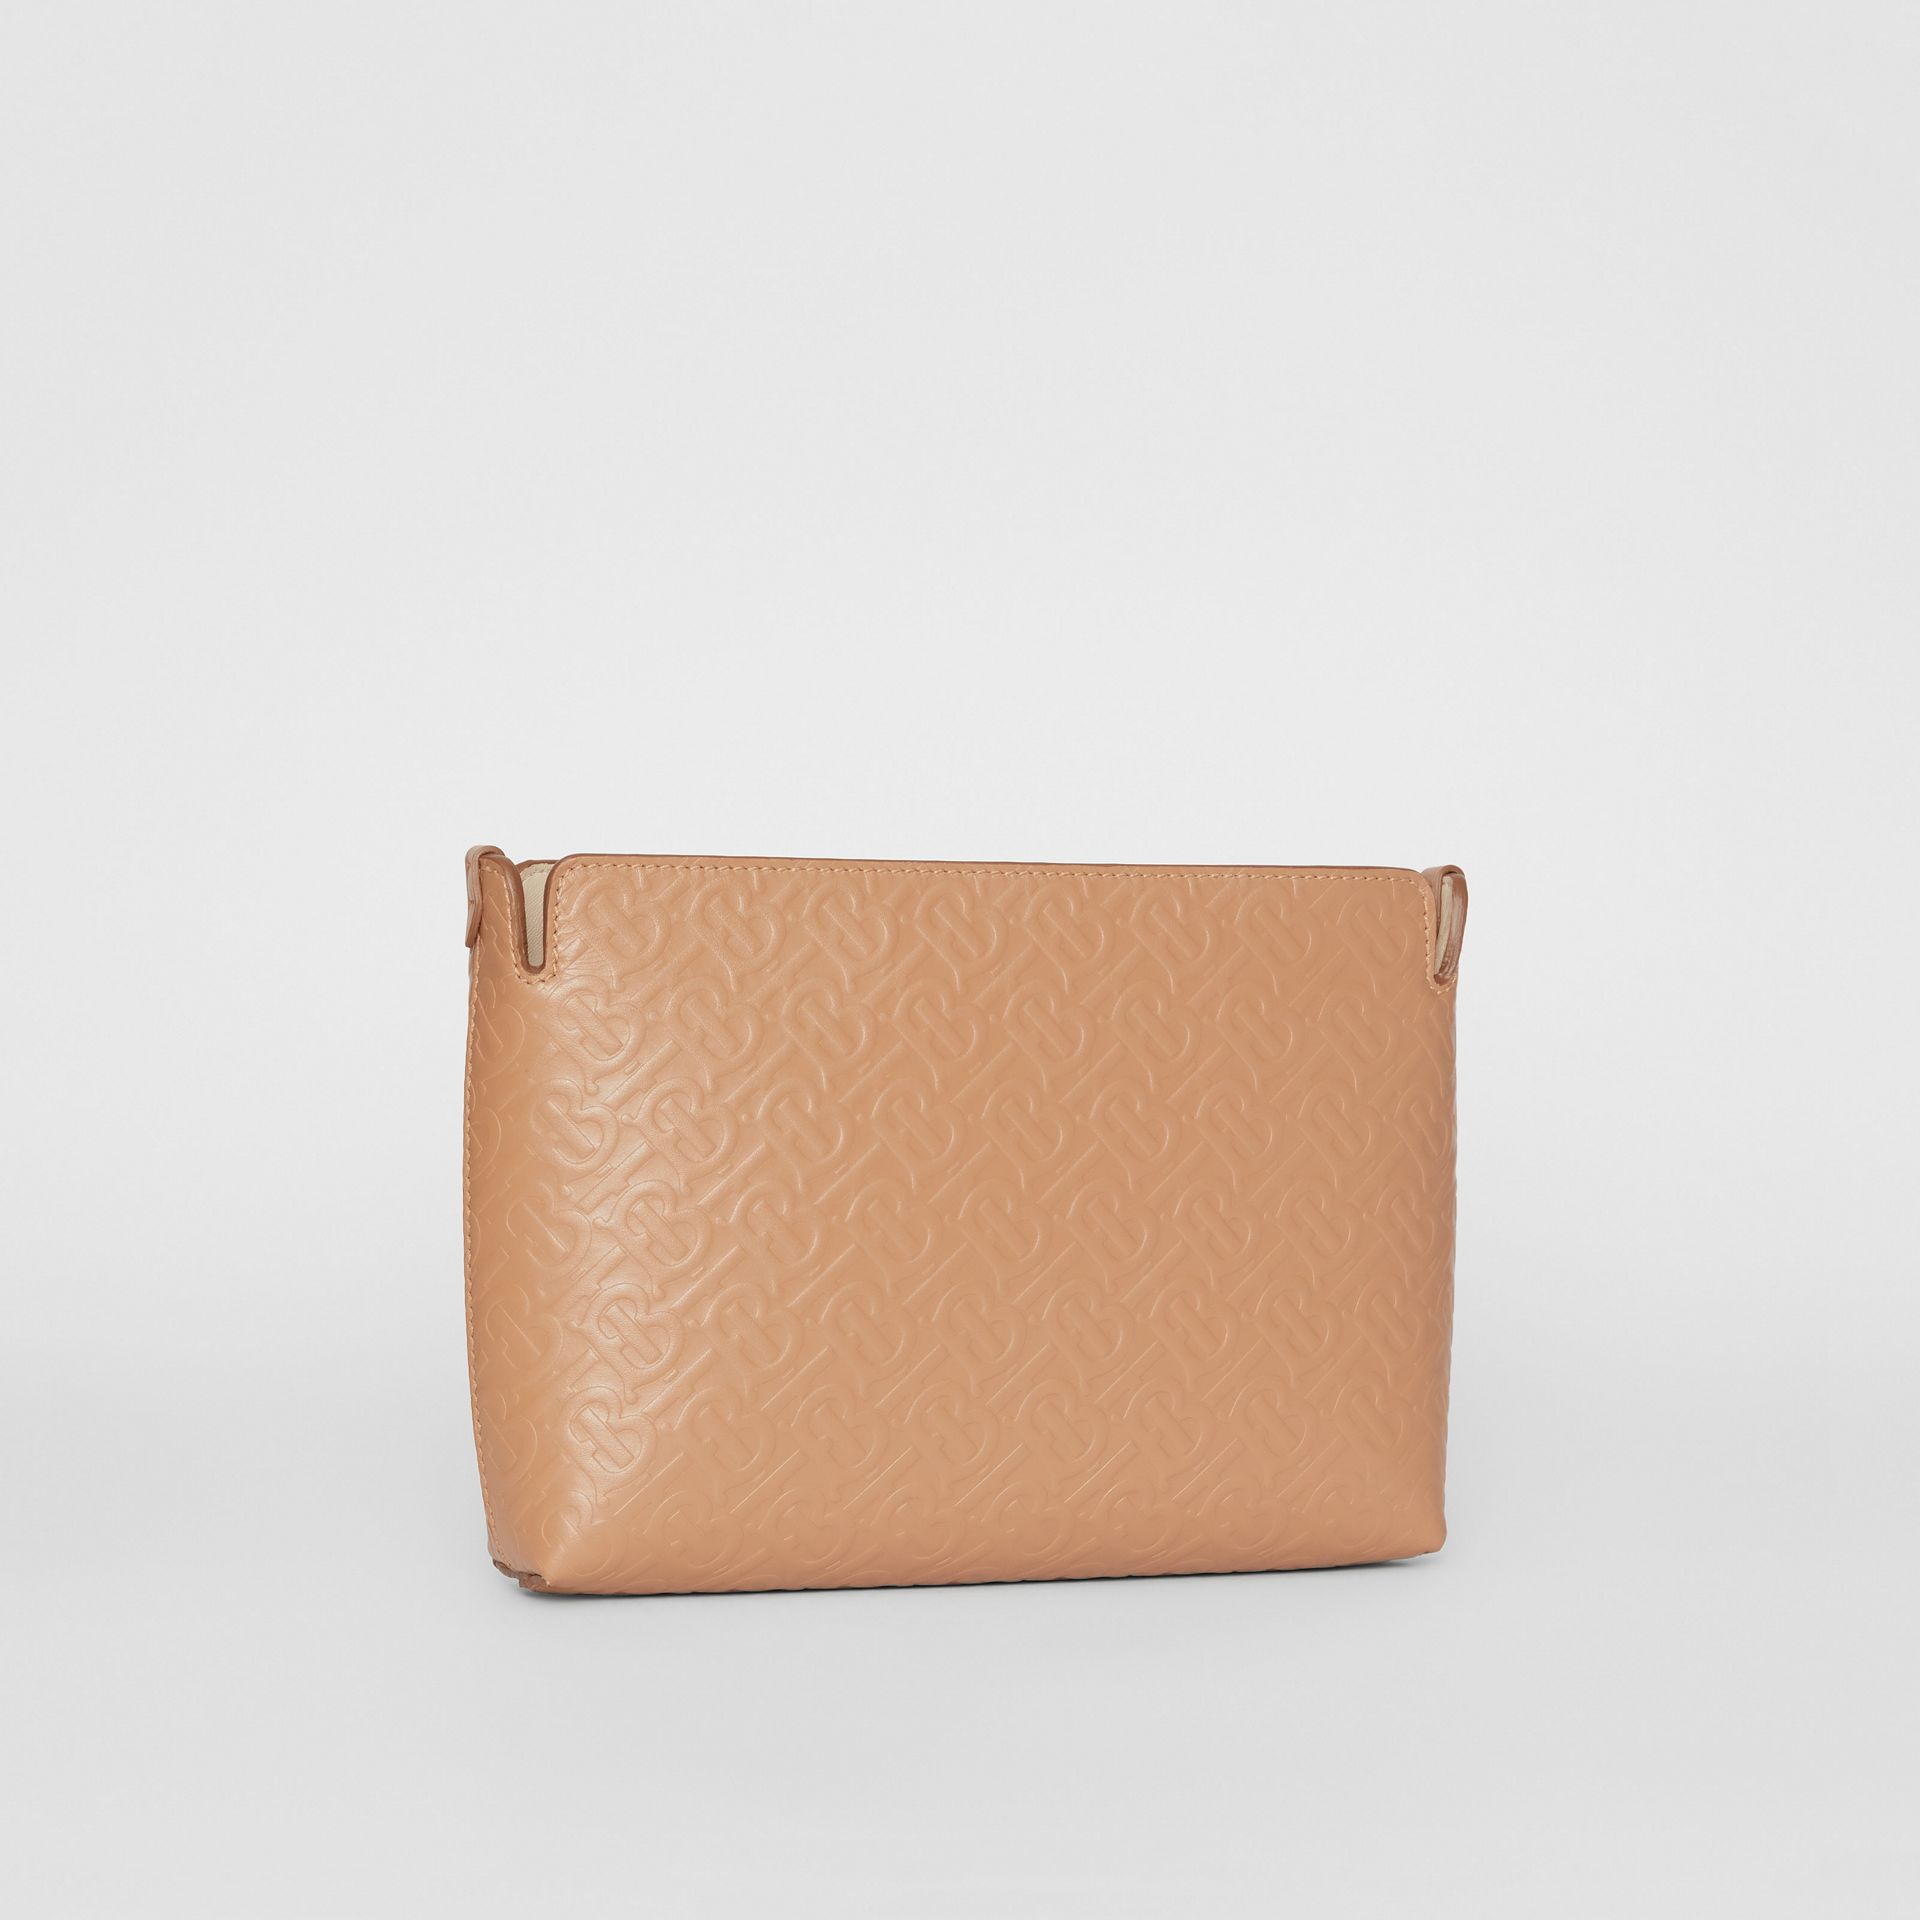 Medium Monogram Leather Clutch in Light Camel - Women | Burberry United States - gallery image 5